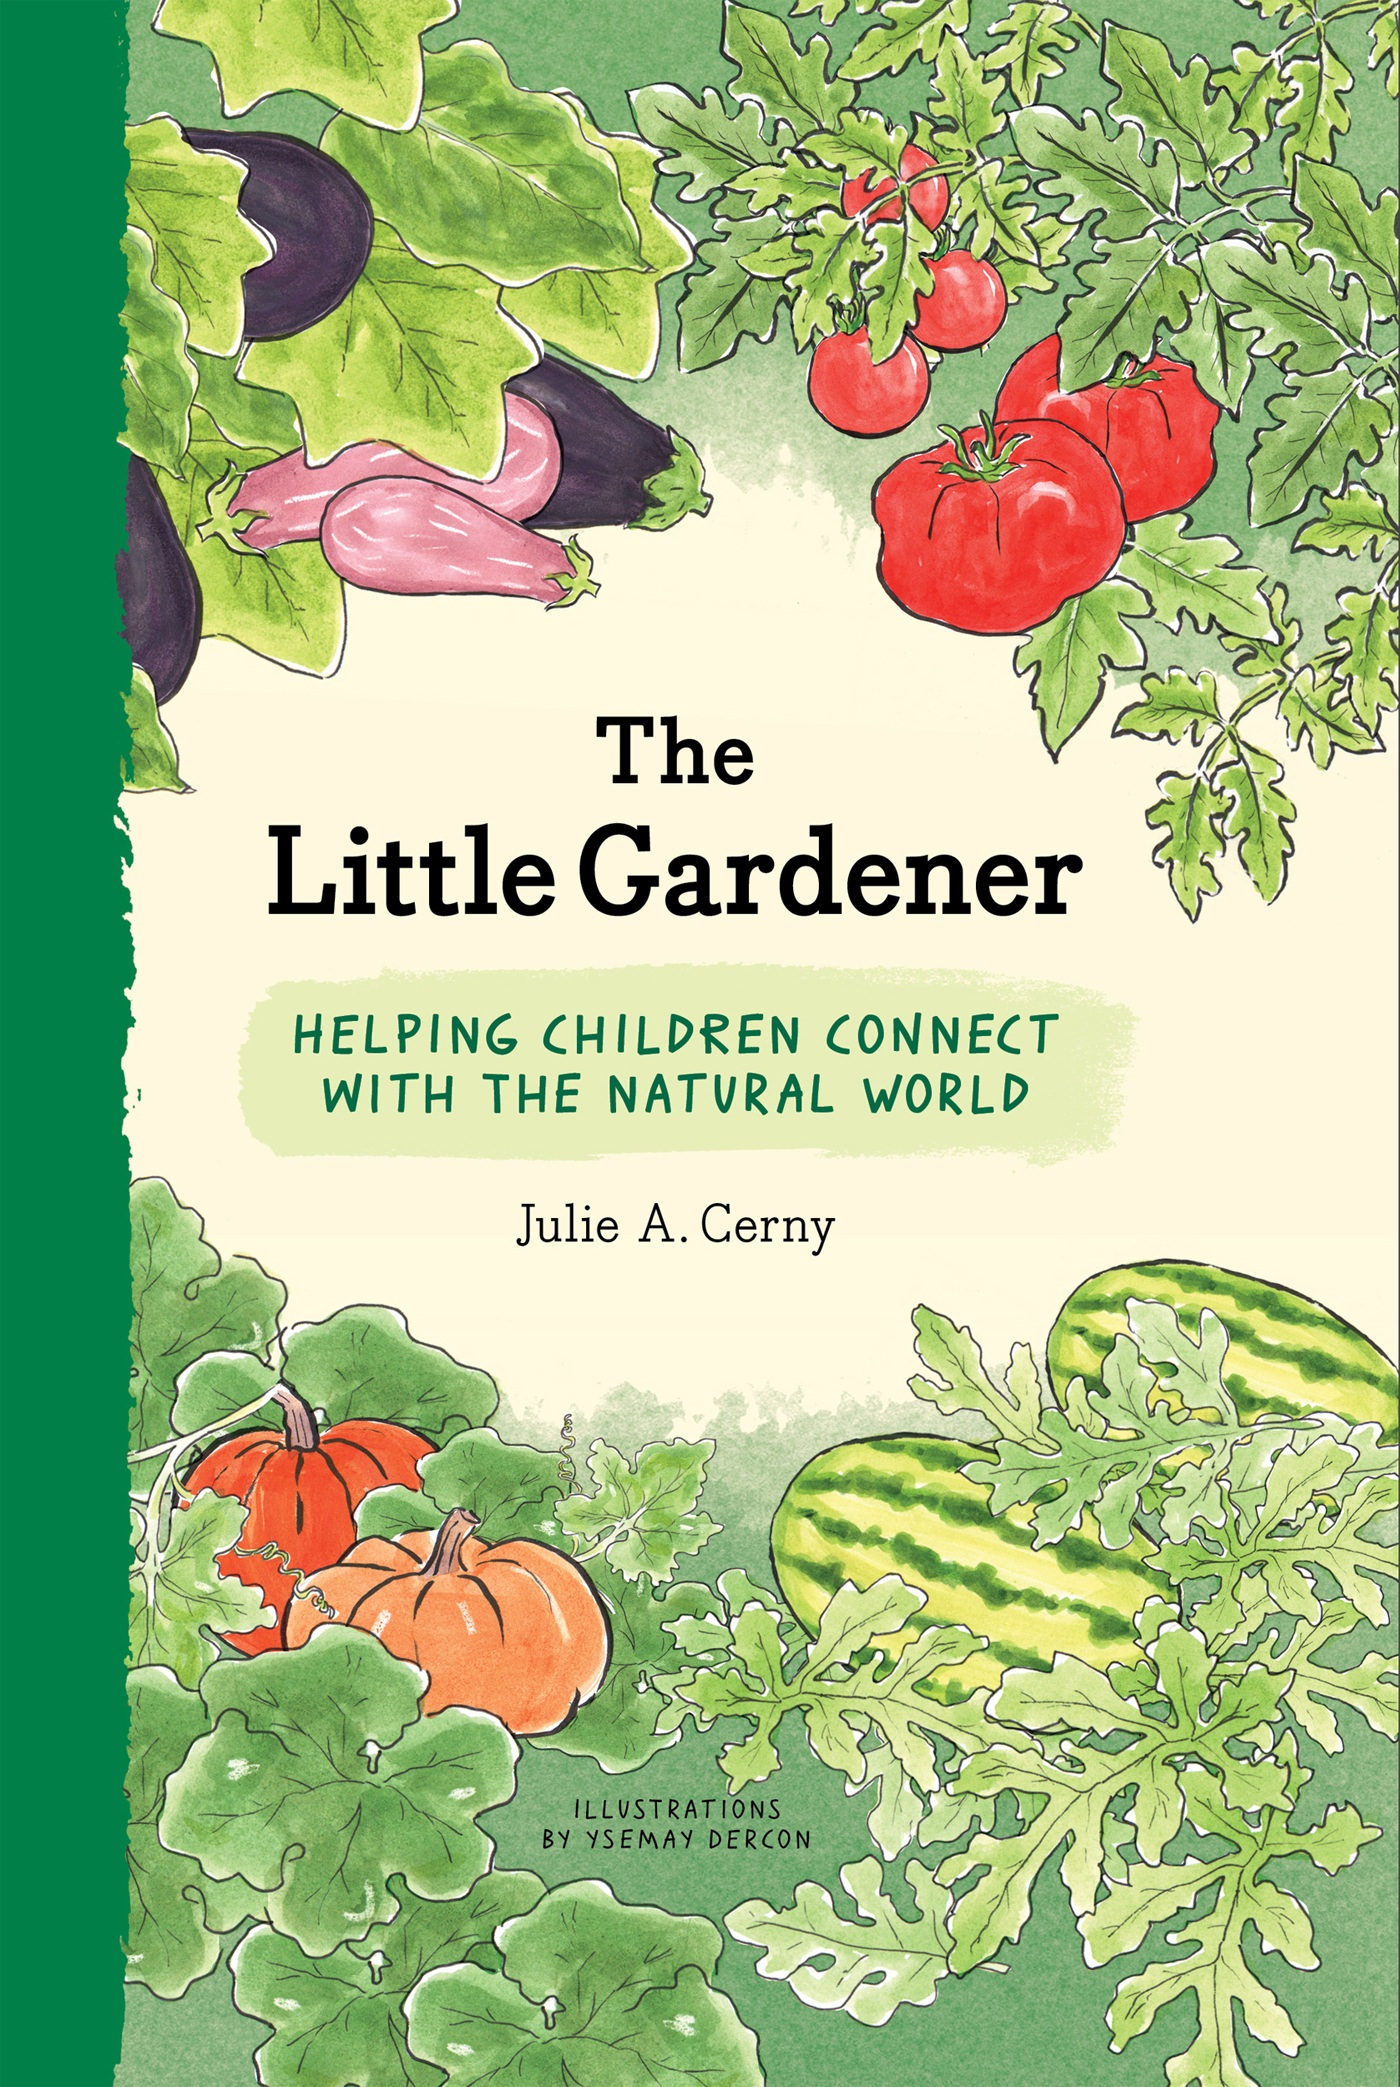 Little Gardener: Helping Children Connect with the Natural World